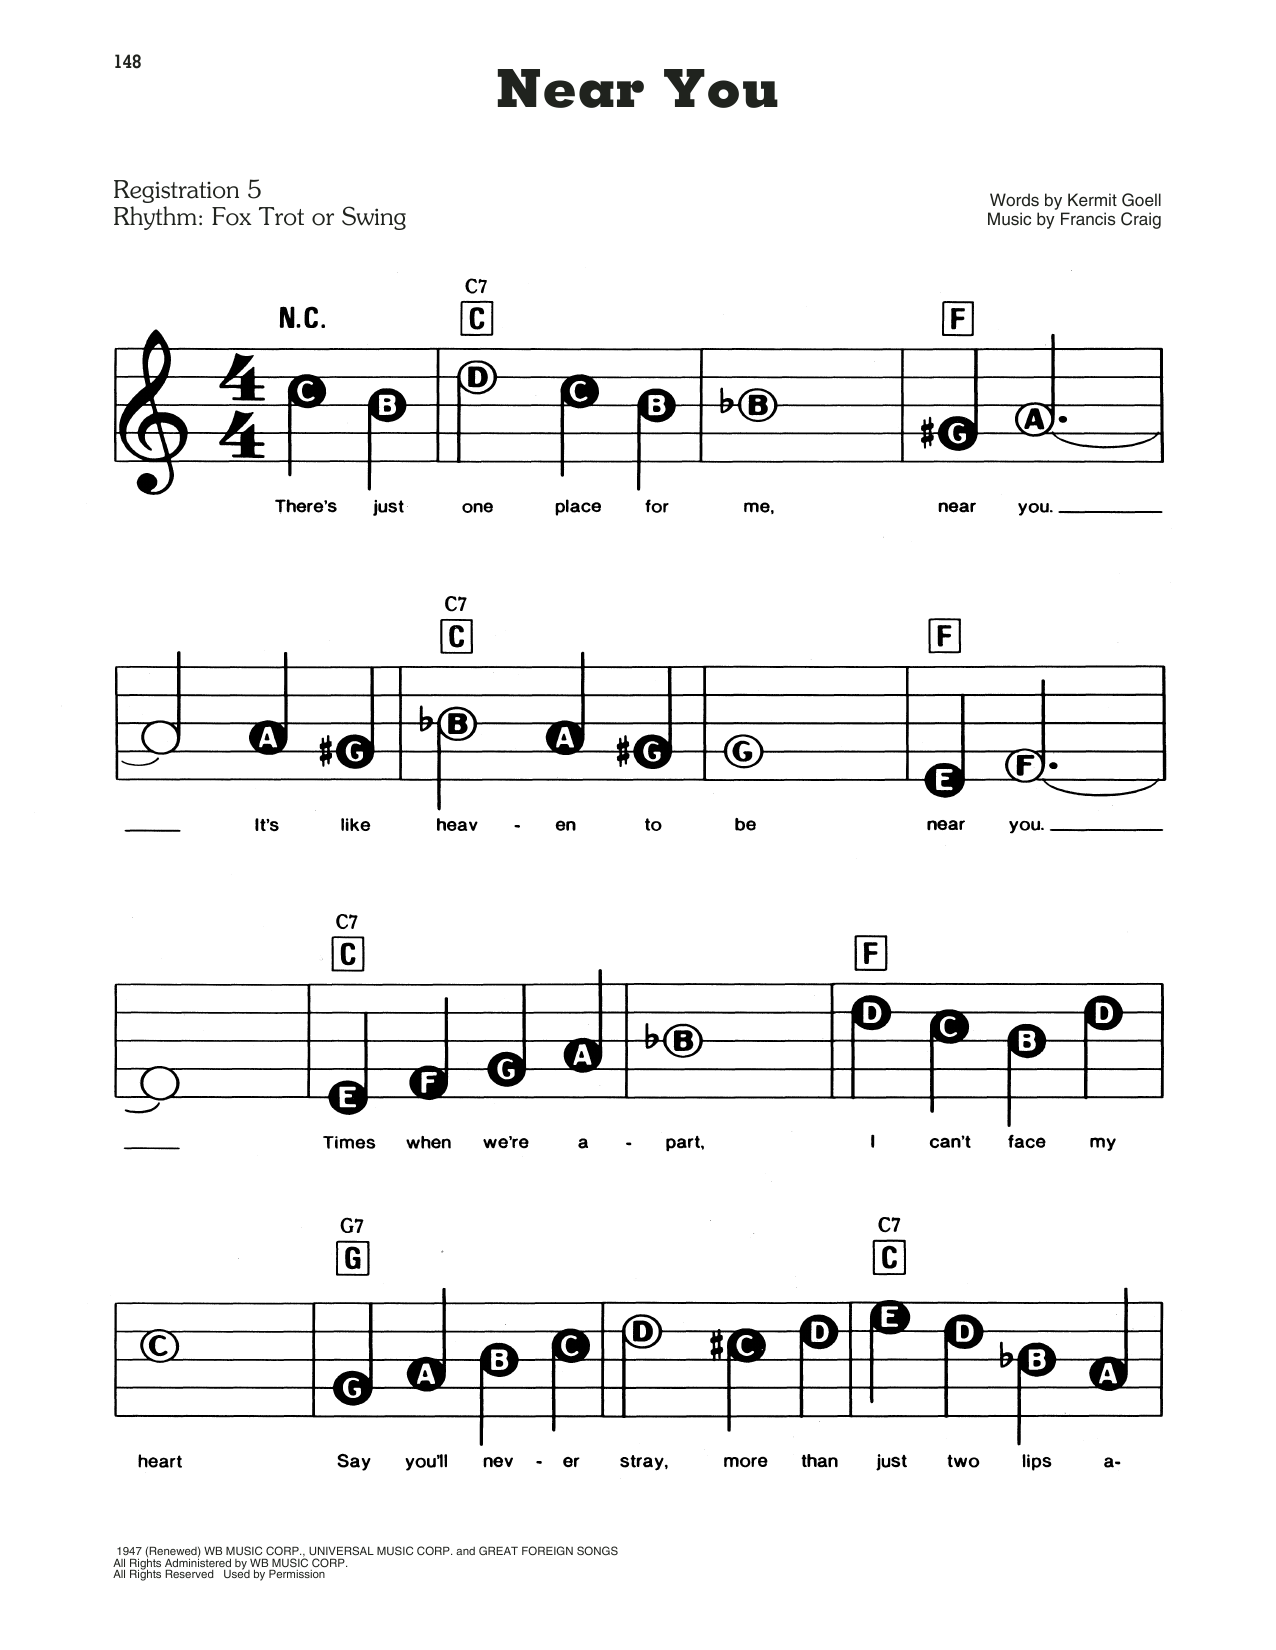 Francis Craig and His Orchestra Near You sheet music notes and chords. Download Printable PDF.